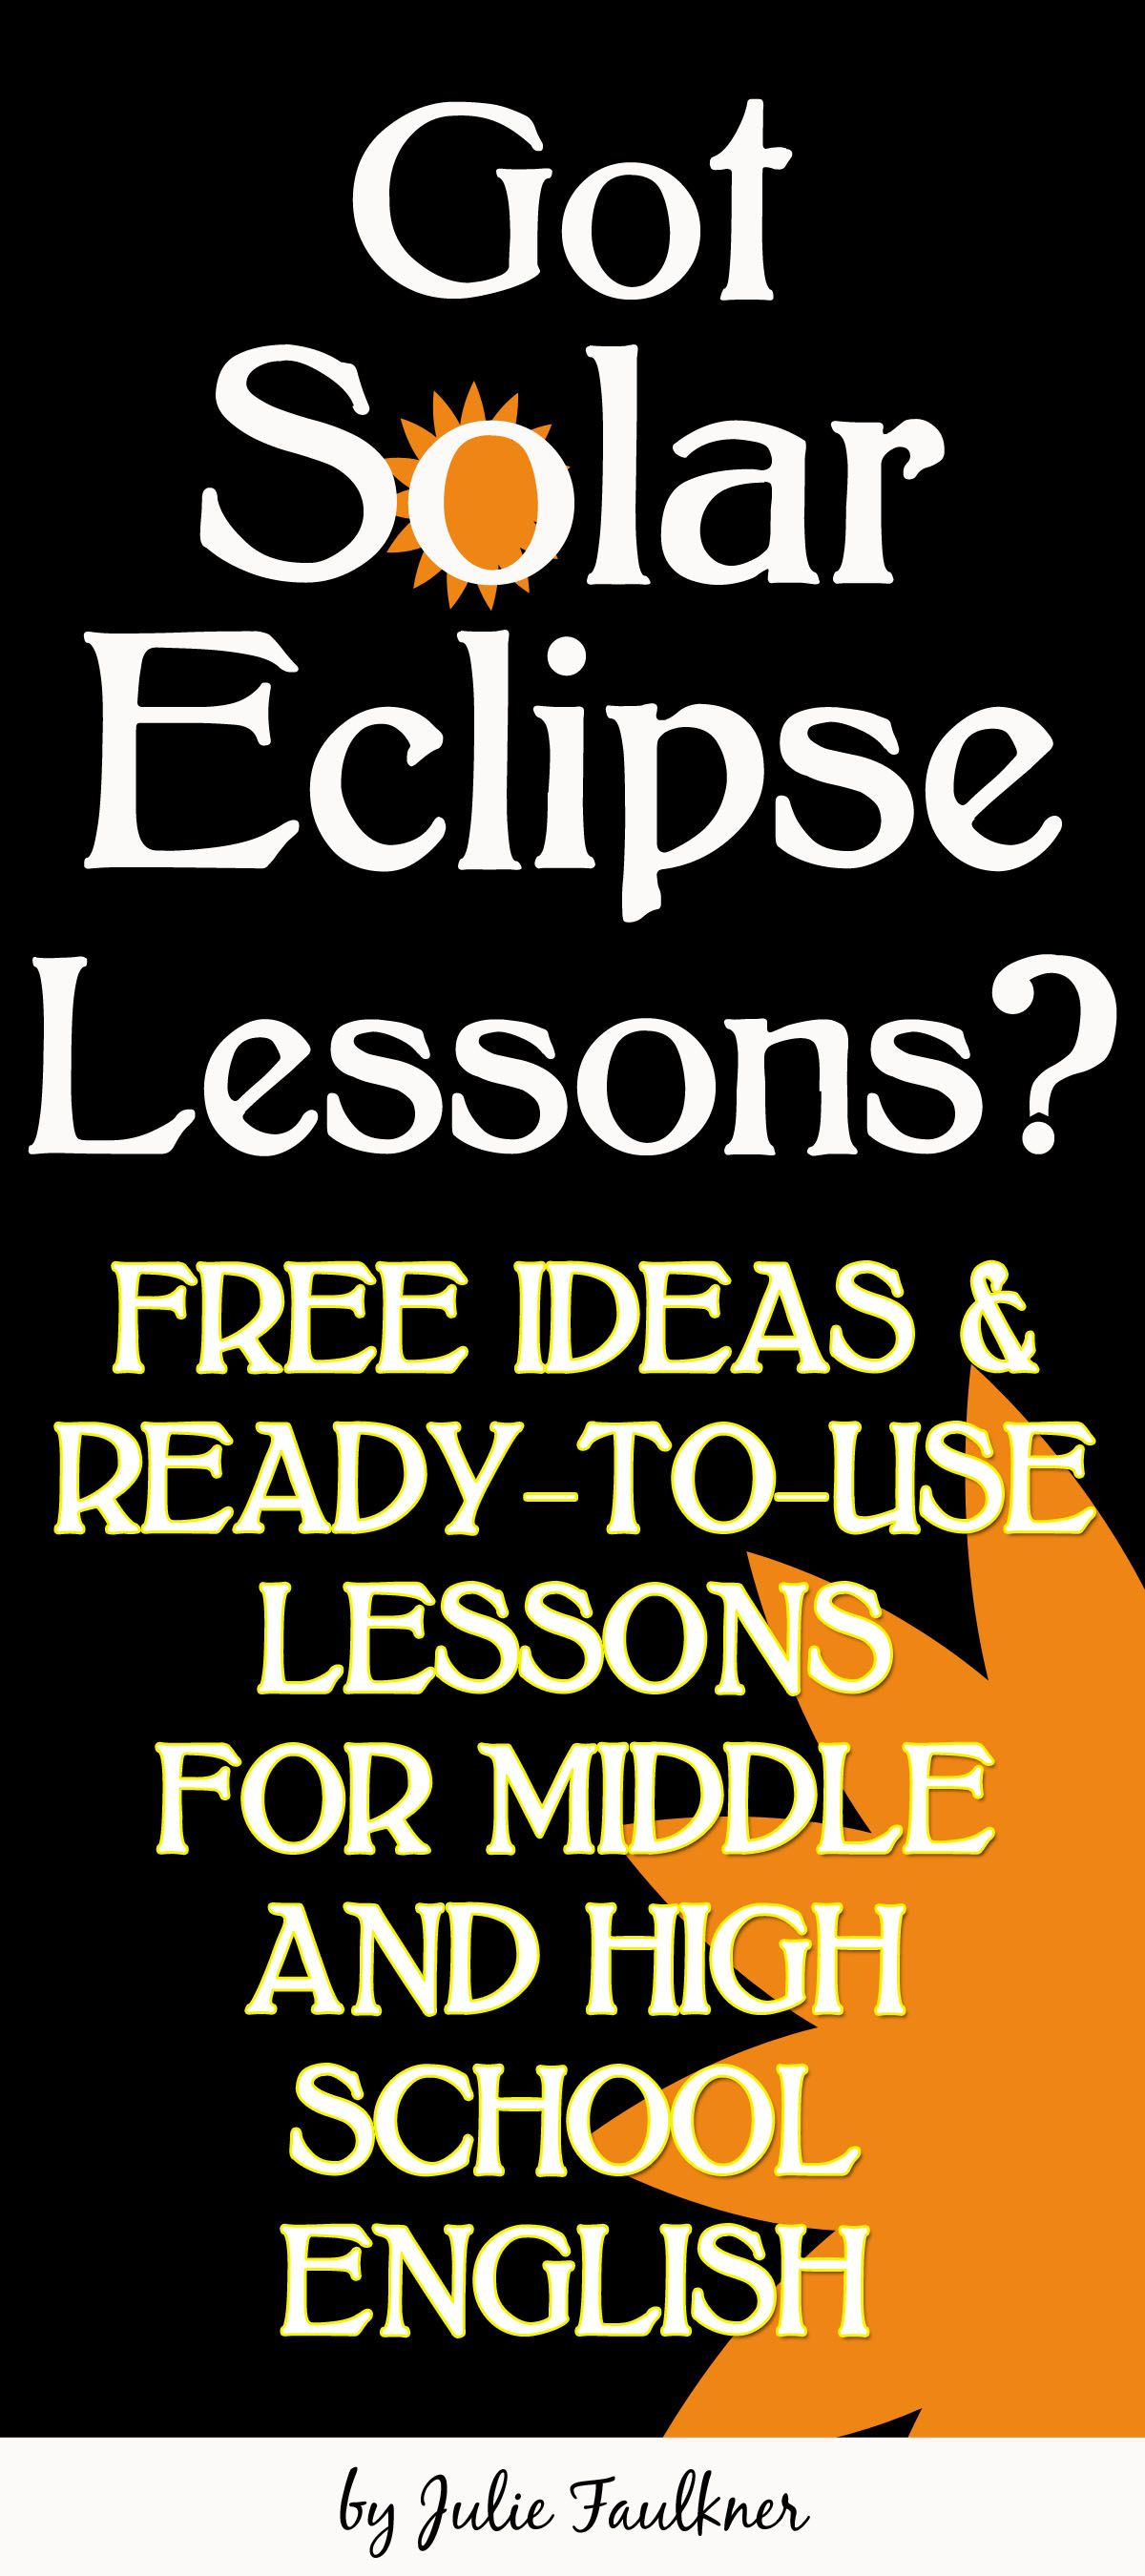 Solar Eclipse Lessons Ideas Free Middle School And High School English All Summer In A Day